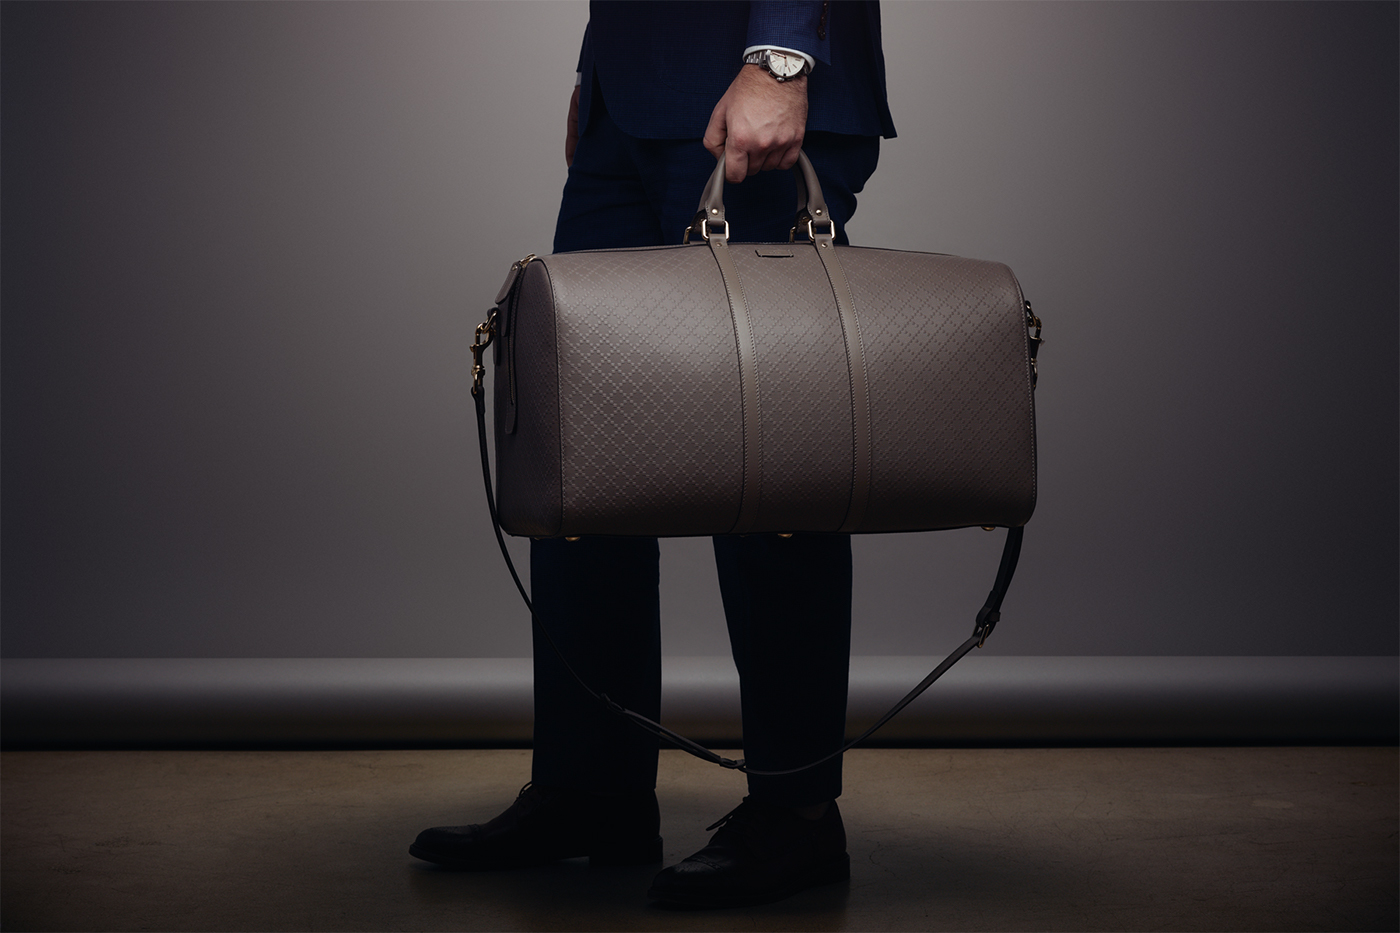 ad1d47e2d99 http   hypebeast.com 2014 12 gucci-presents-the-g-chrono-collection-and- bright-diamante-leather-duffle